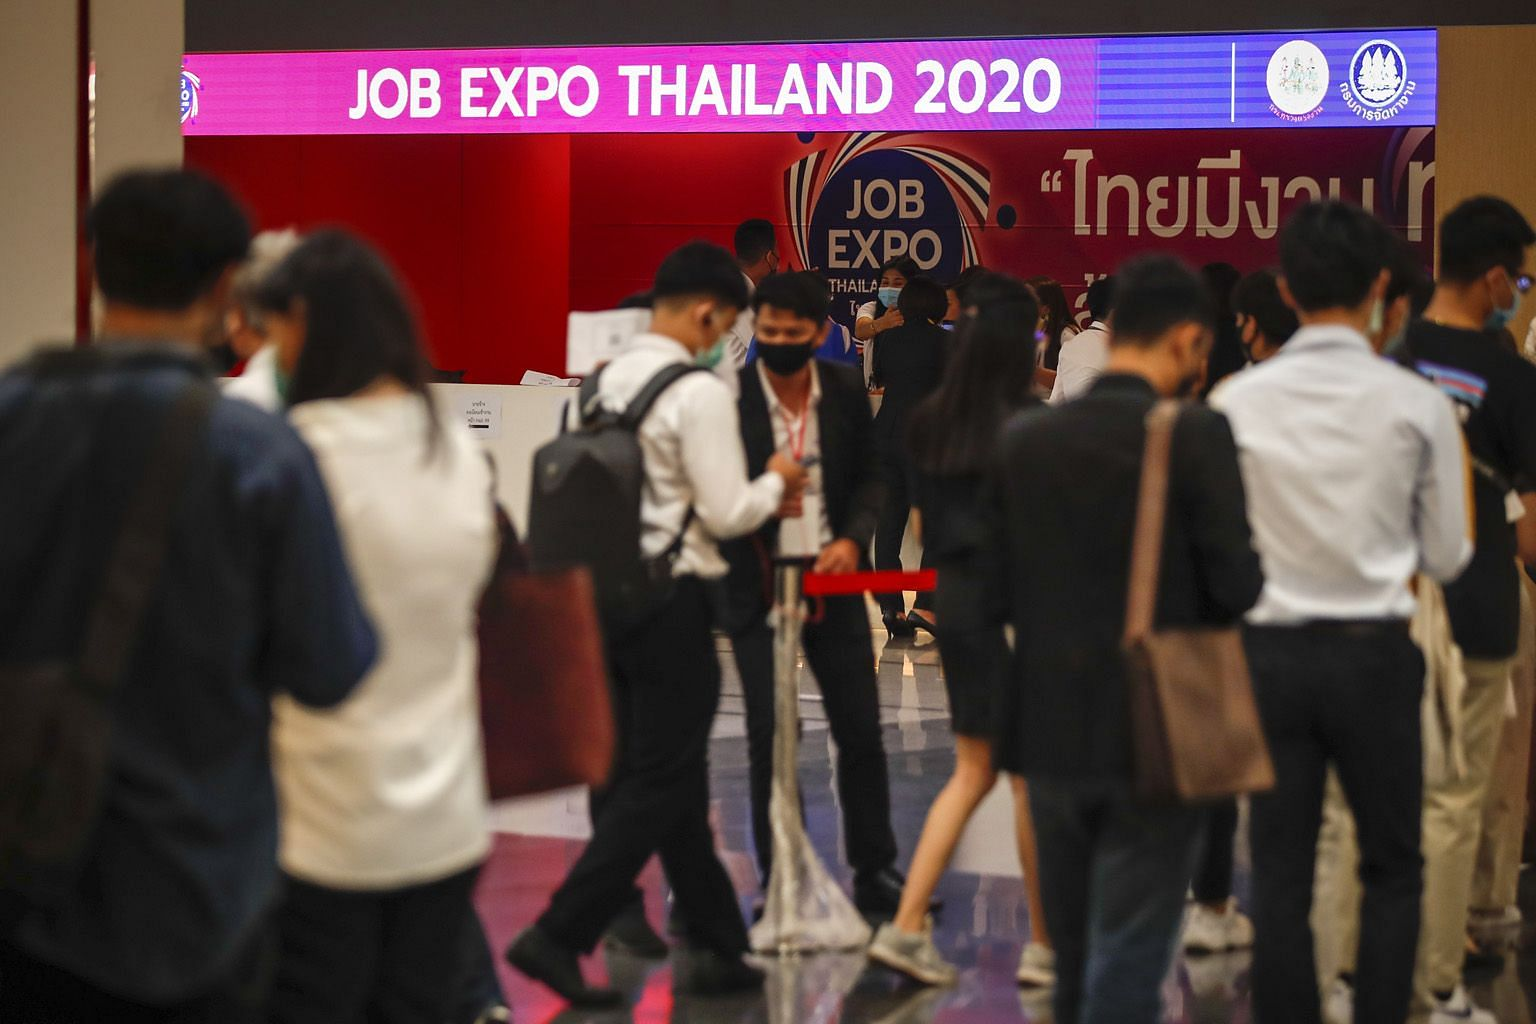 Thais waiting to enter the Job Expo Thailand 2020 in Bangkok last Saturday. South-east Asia's second-largest economy could shrink by a record 8.5 per cent this year, with its key tourism sector taking a severe beating, the government predicts, leavin